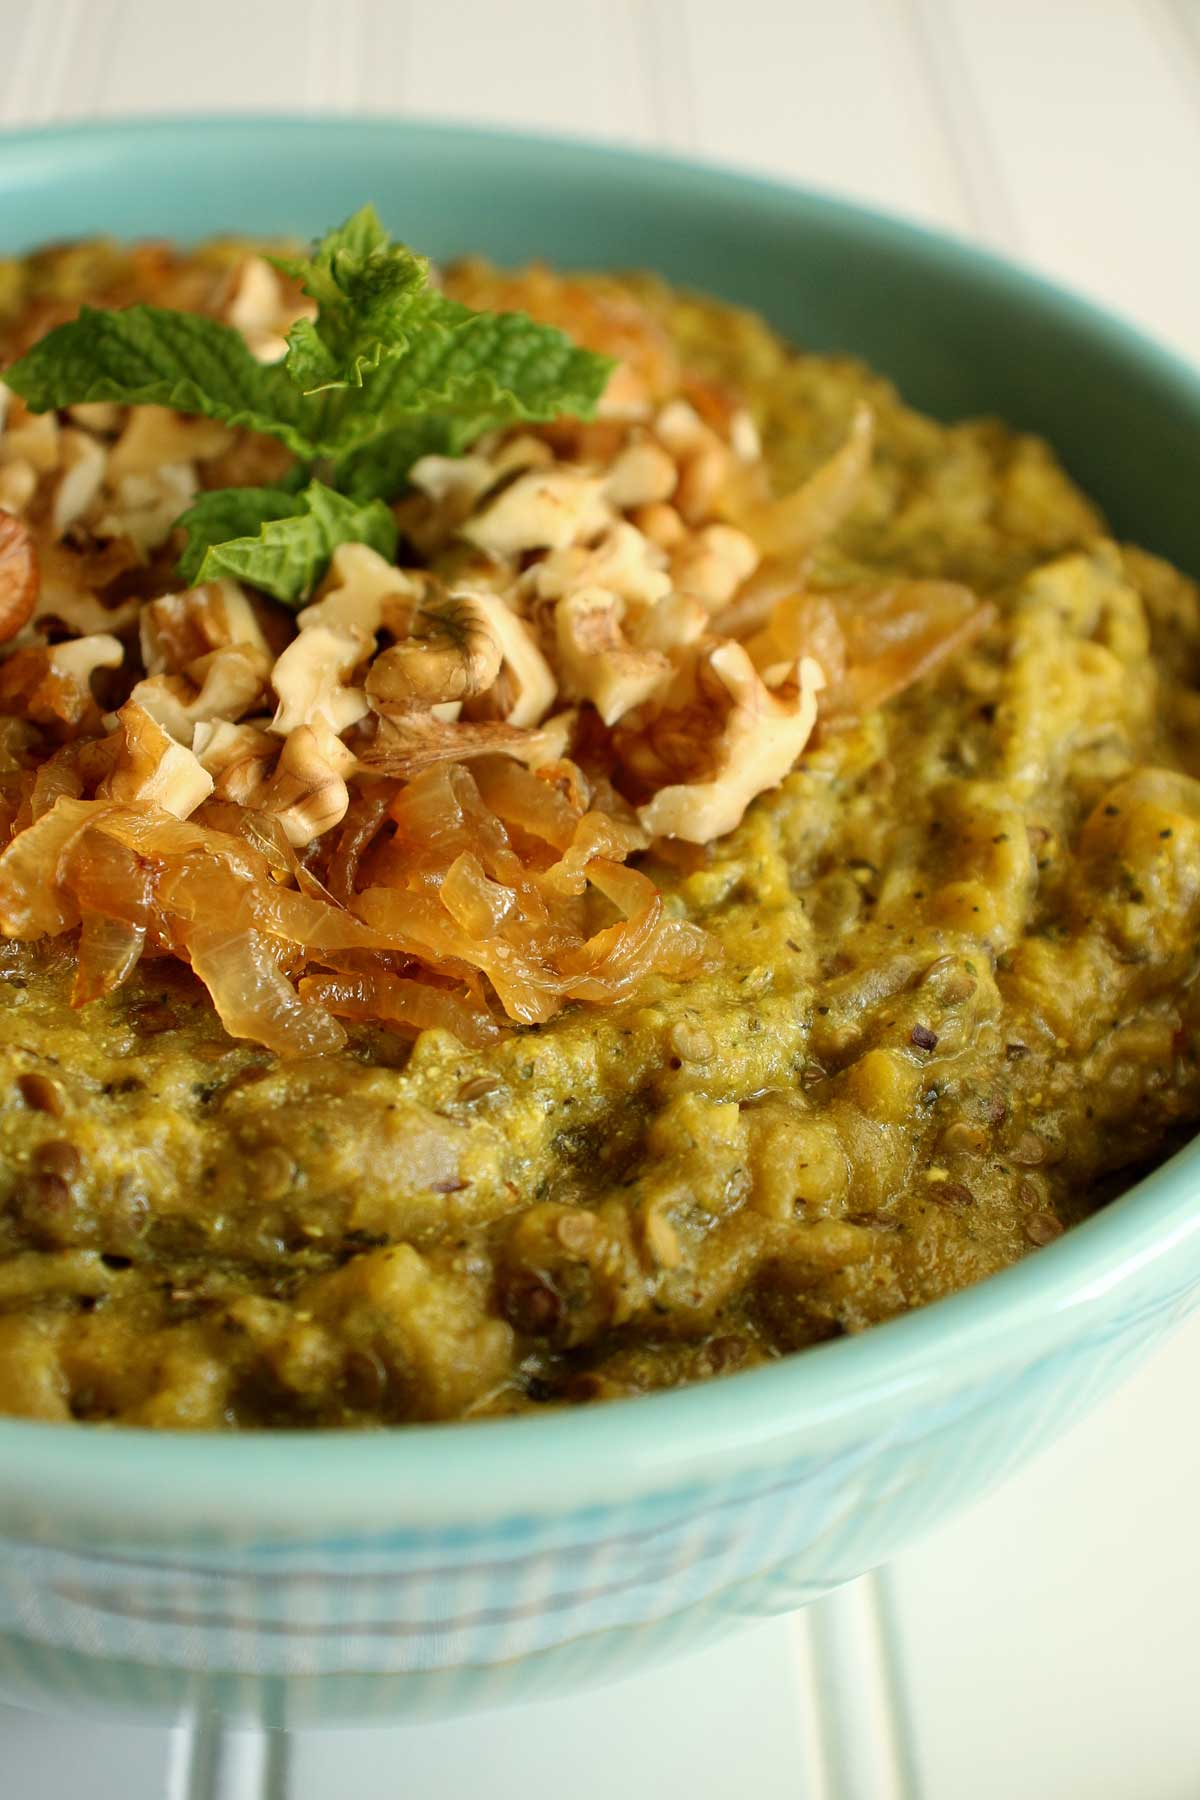 Closeup of a bowl of Persian eggplant dip garnished with caramelized onions, walnuts, and mint.